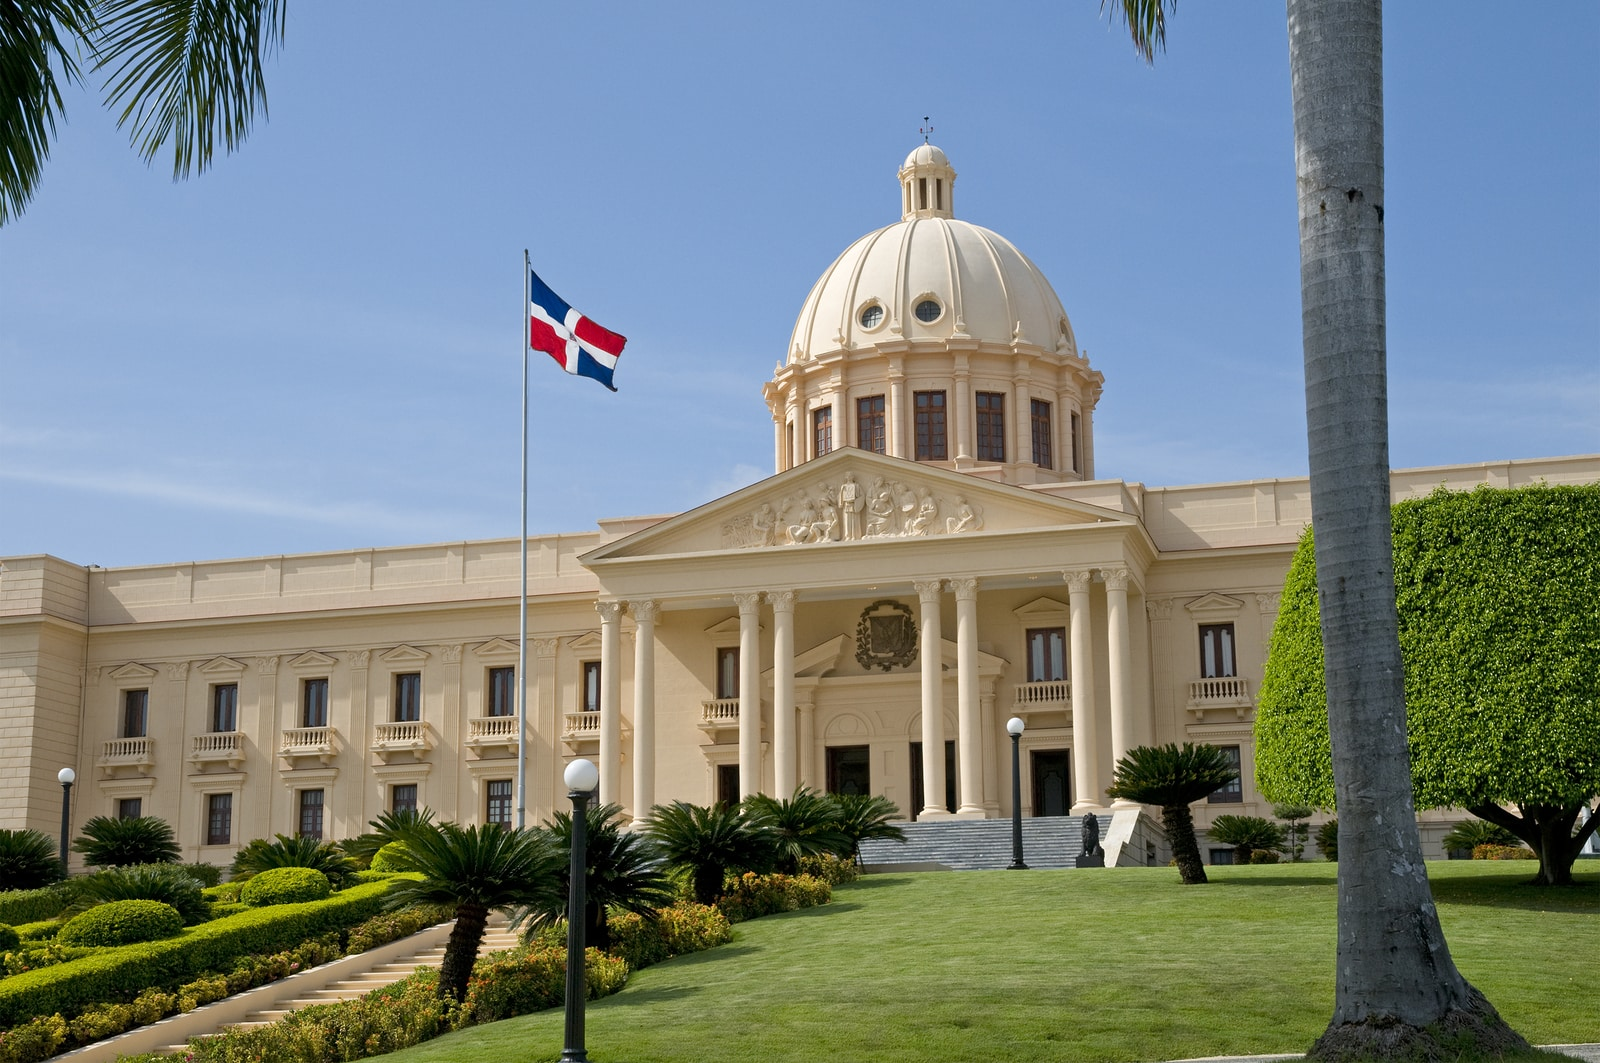 The National Palace in Santo Domingo by Vacation Store Aruba